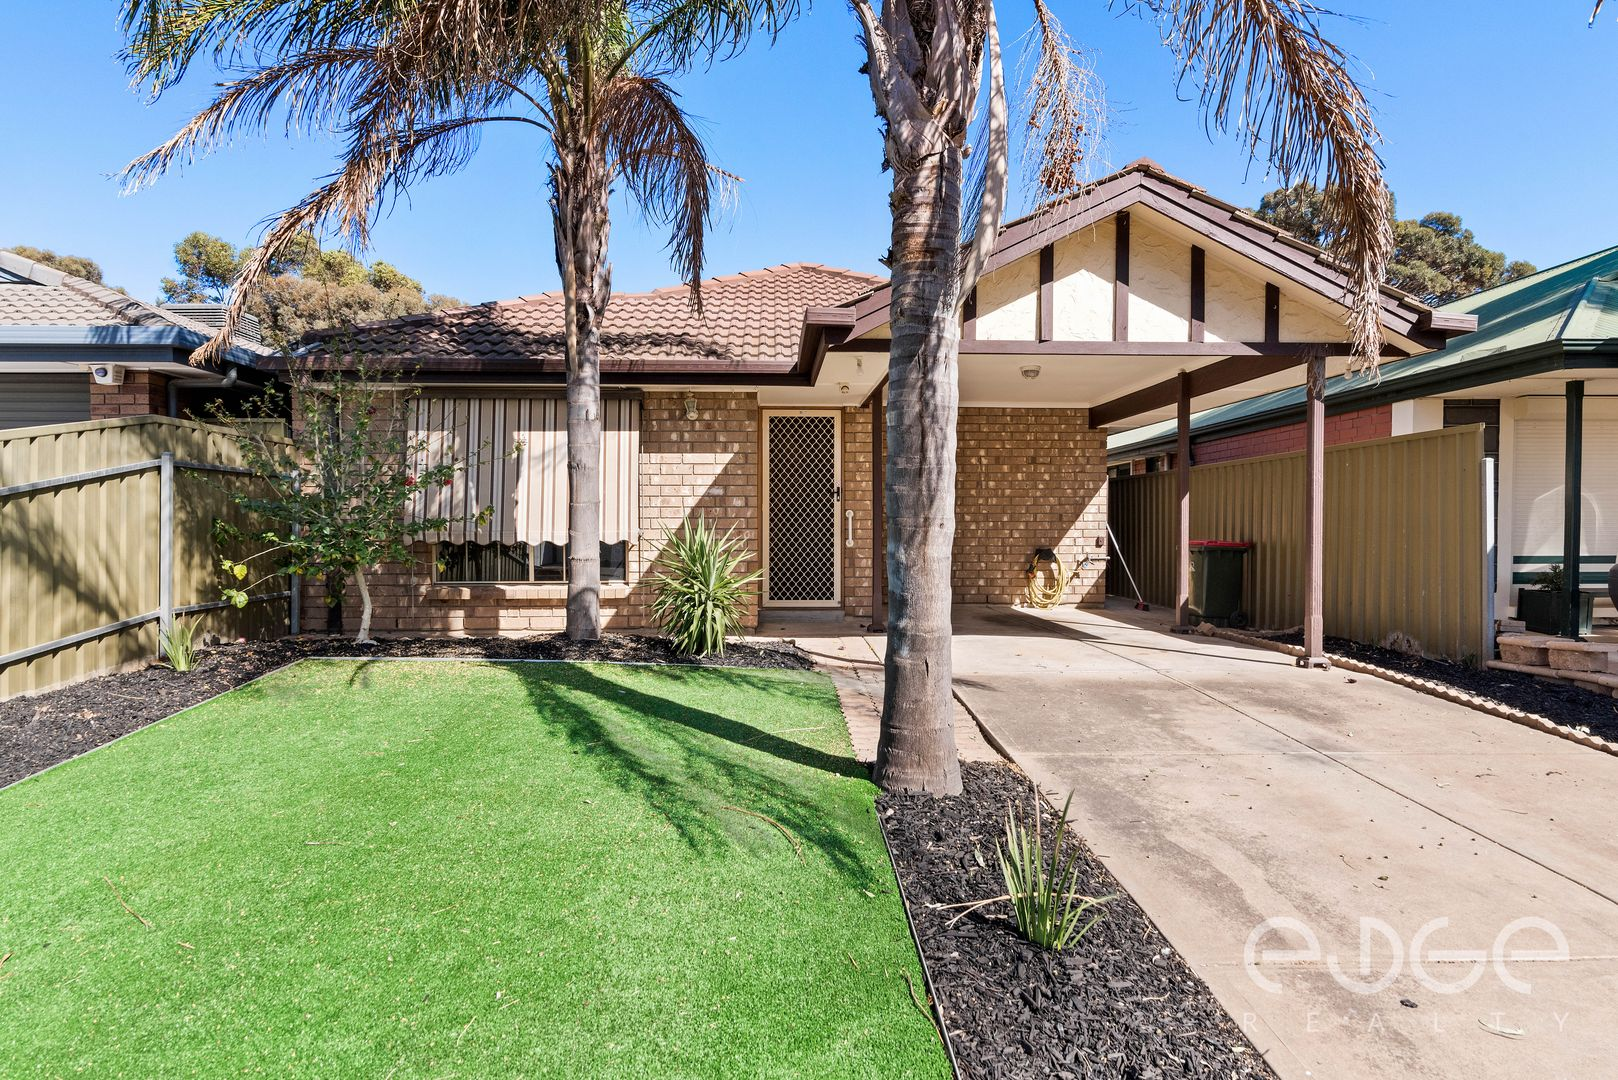 34A General Drive, Paralowie SA 5108, Image 0